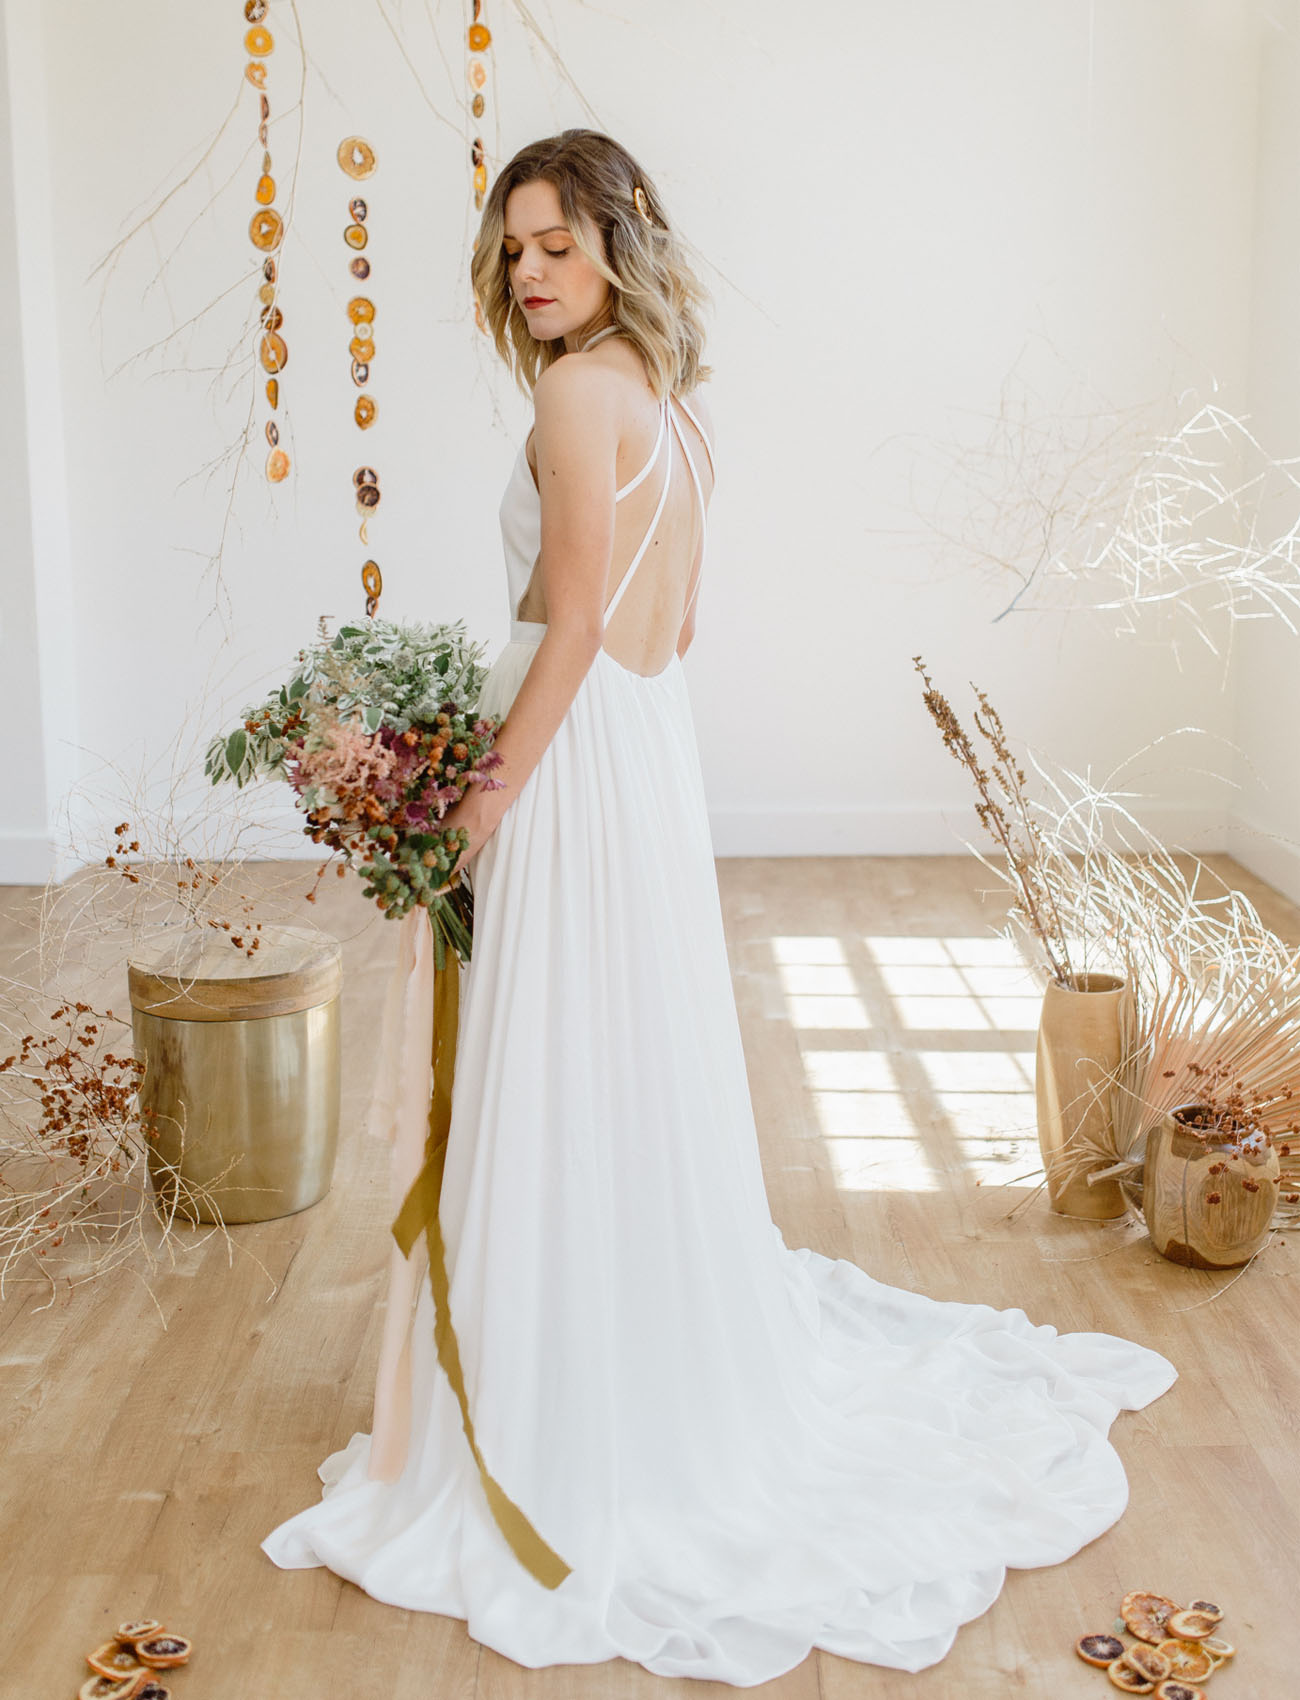 Deconstructed Citrus Wedding Inspiration